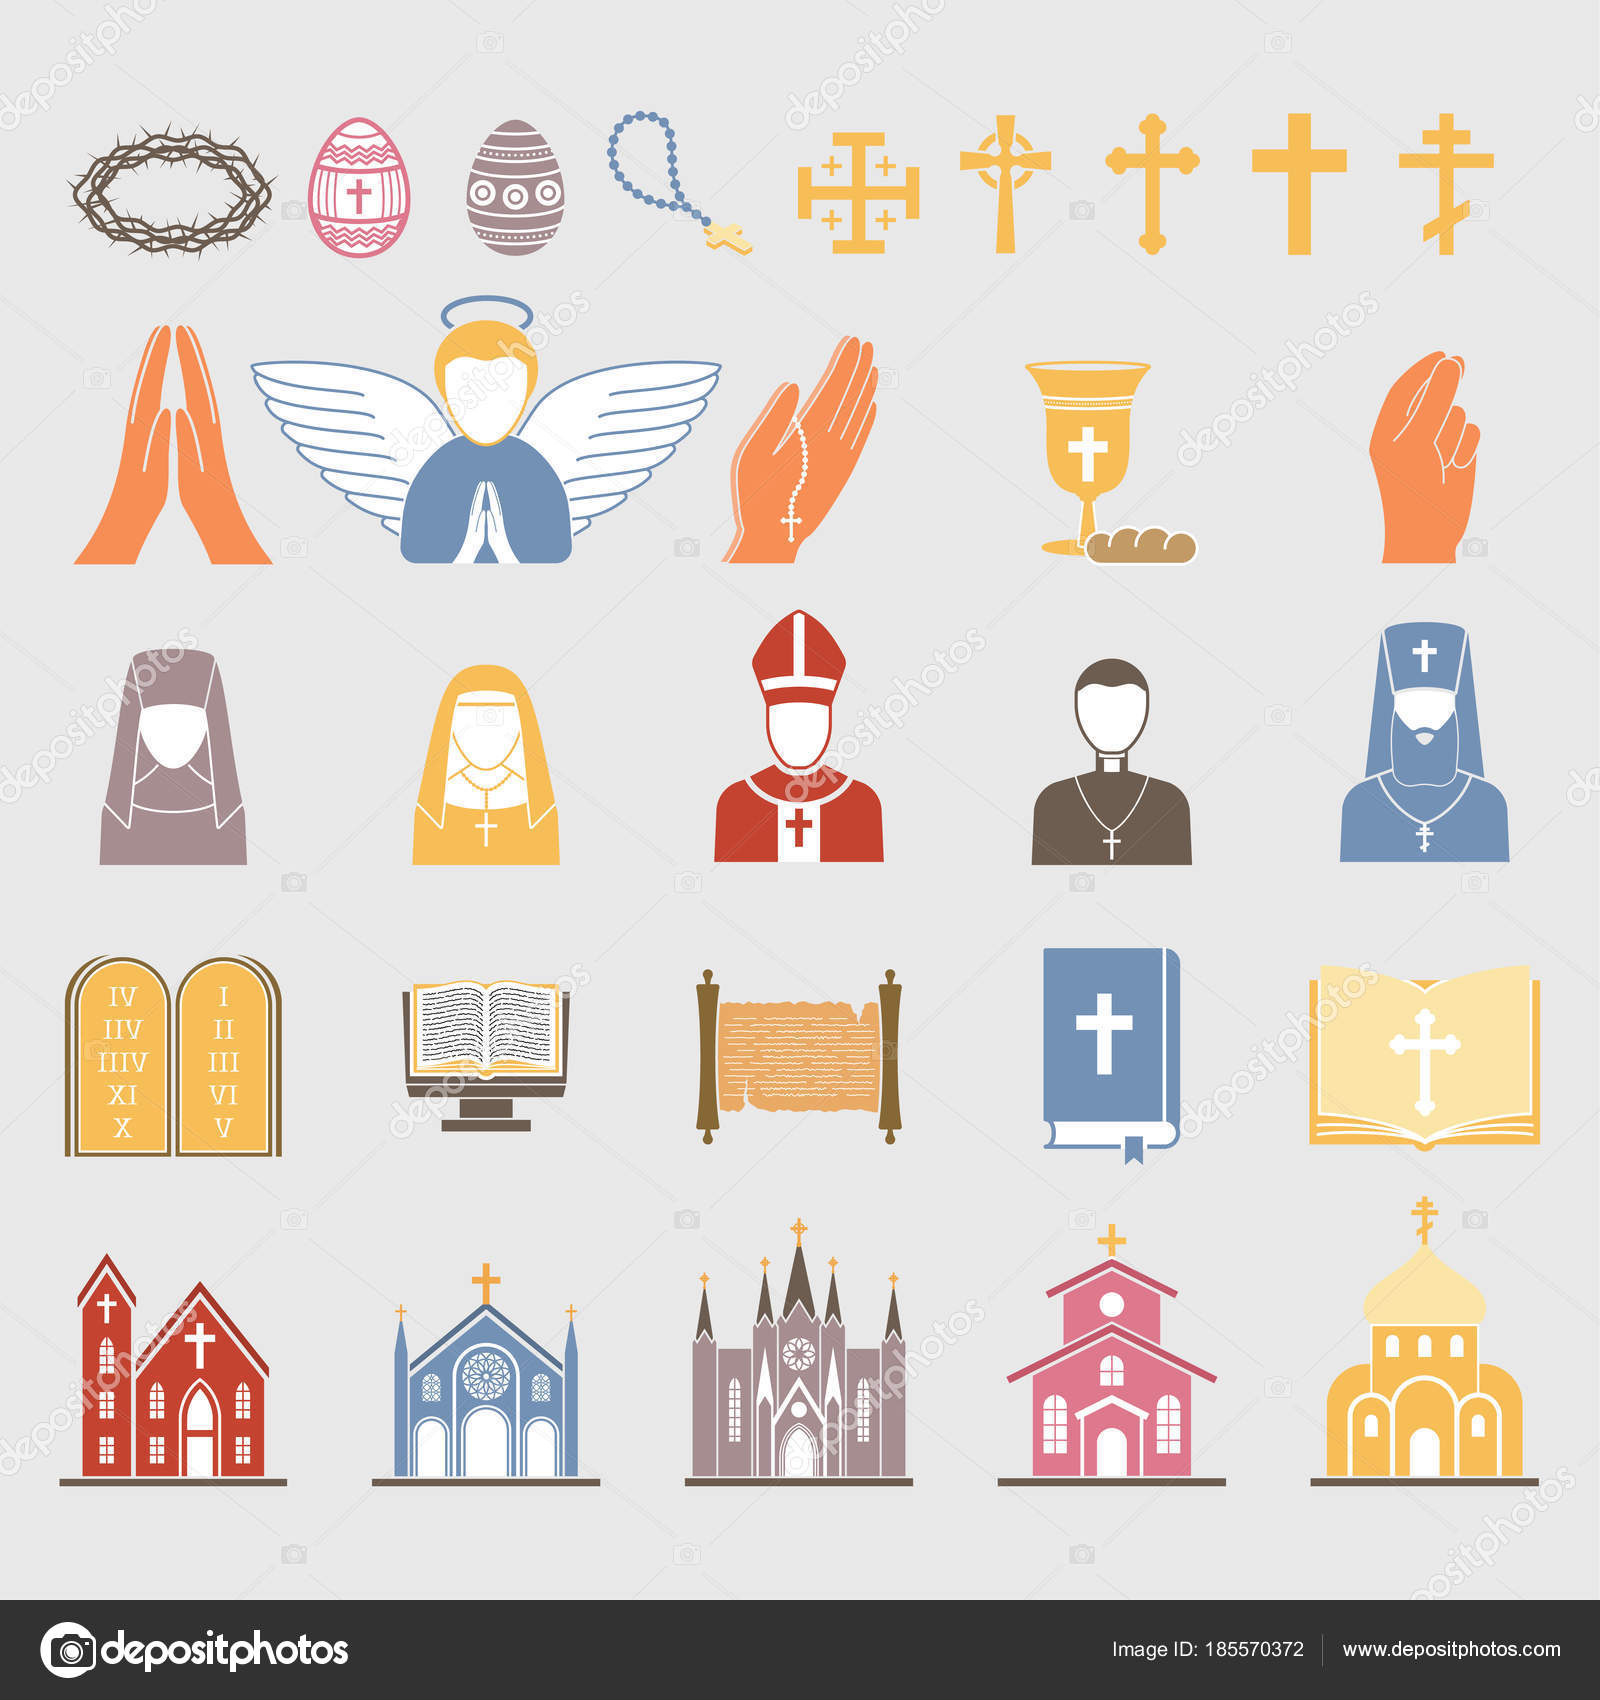 christian symbols and meanings pdf